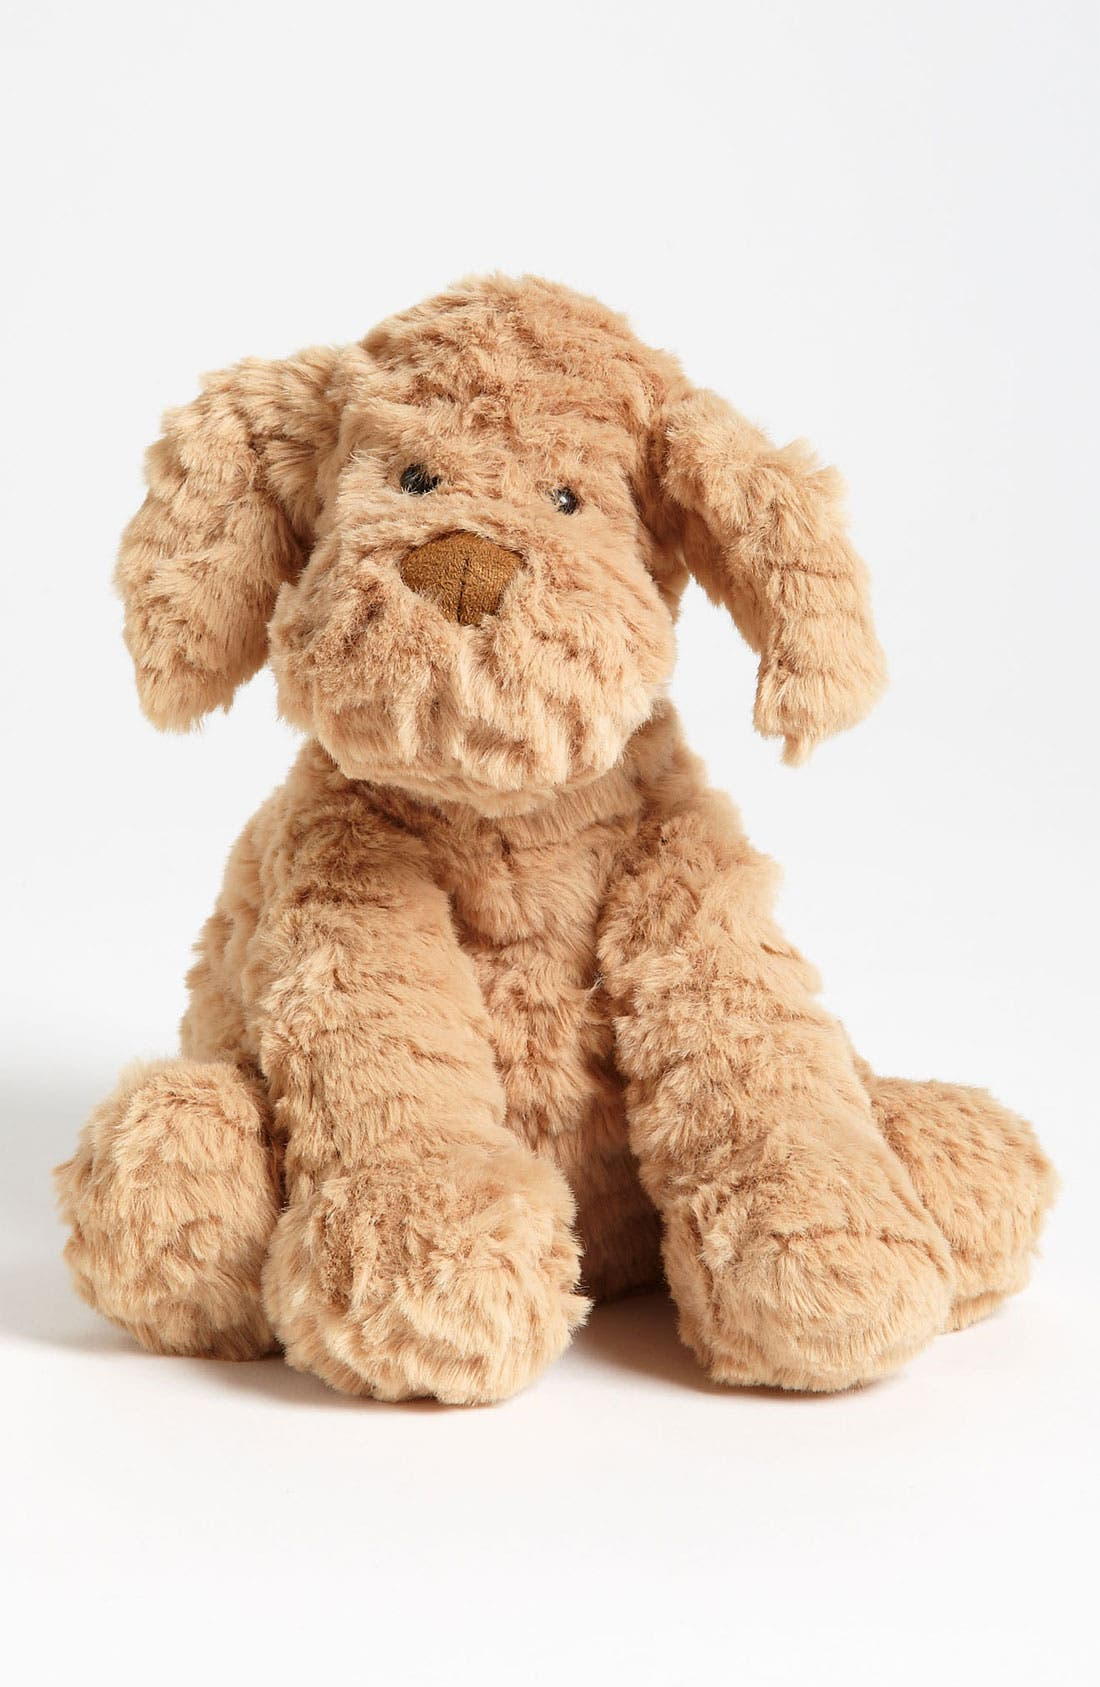 Alternate Image 1 Selected - Jellycat 'Fuddlewuddle Puppy' Stuffed Animal